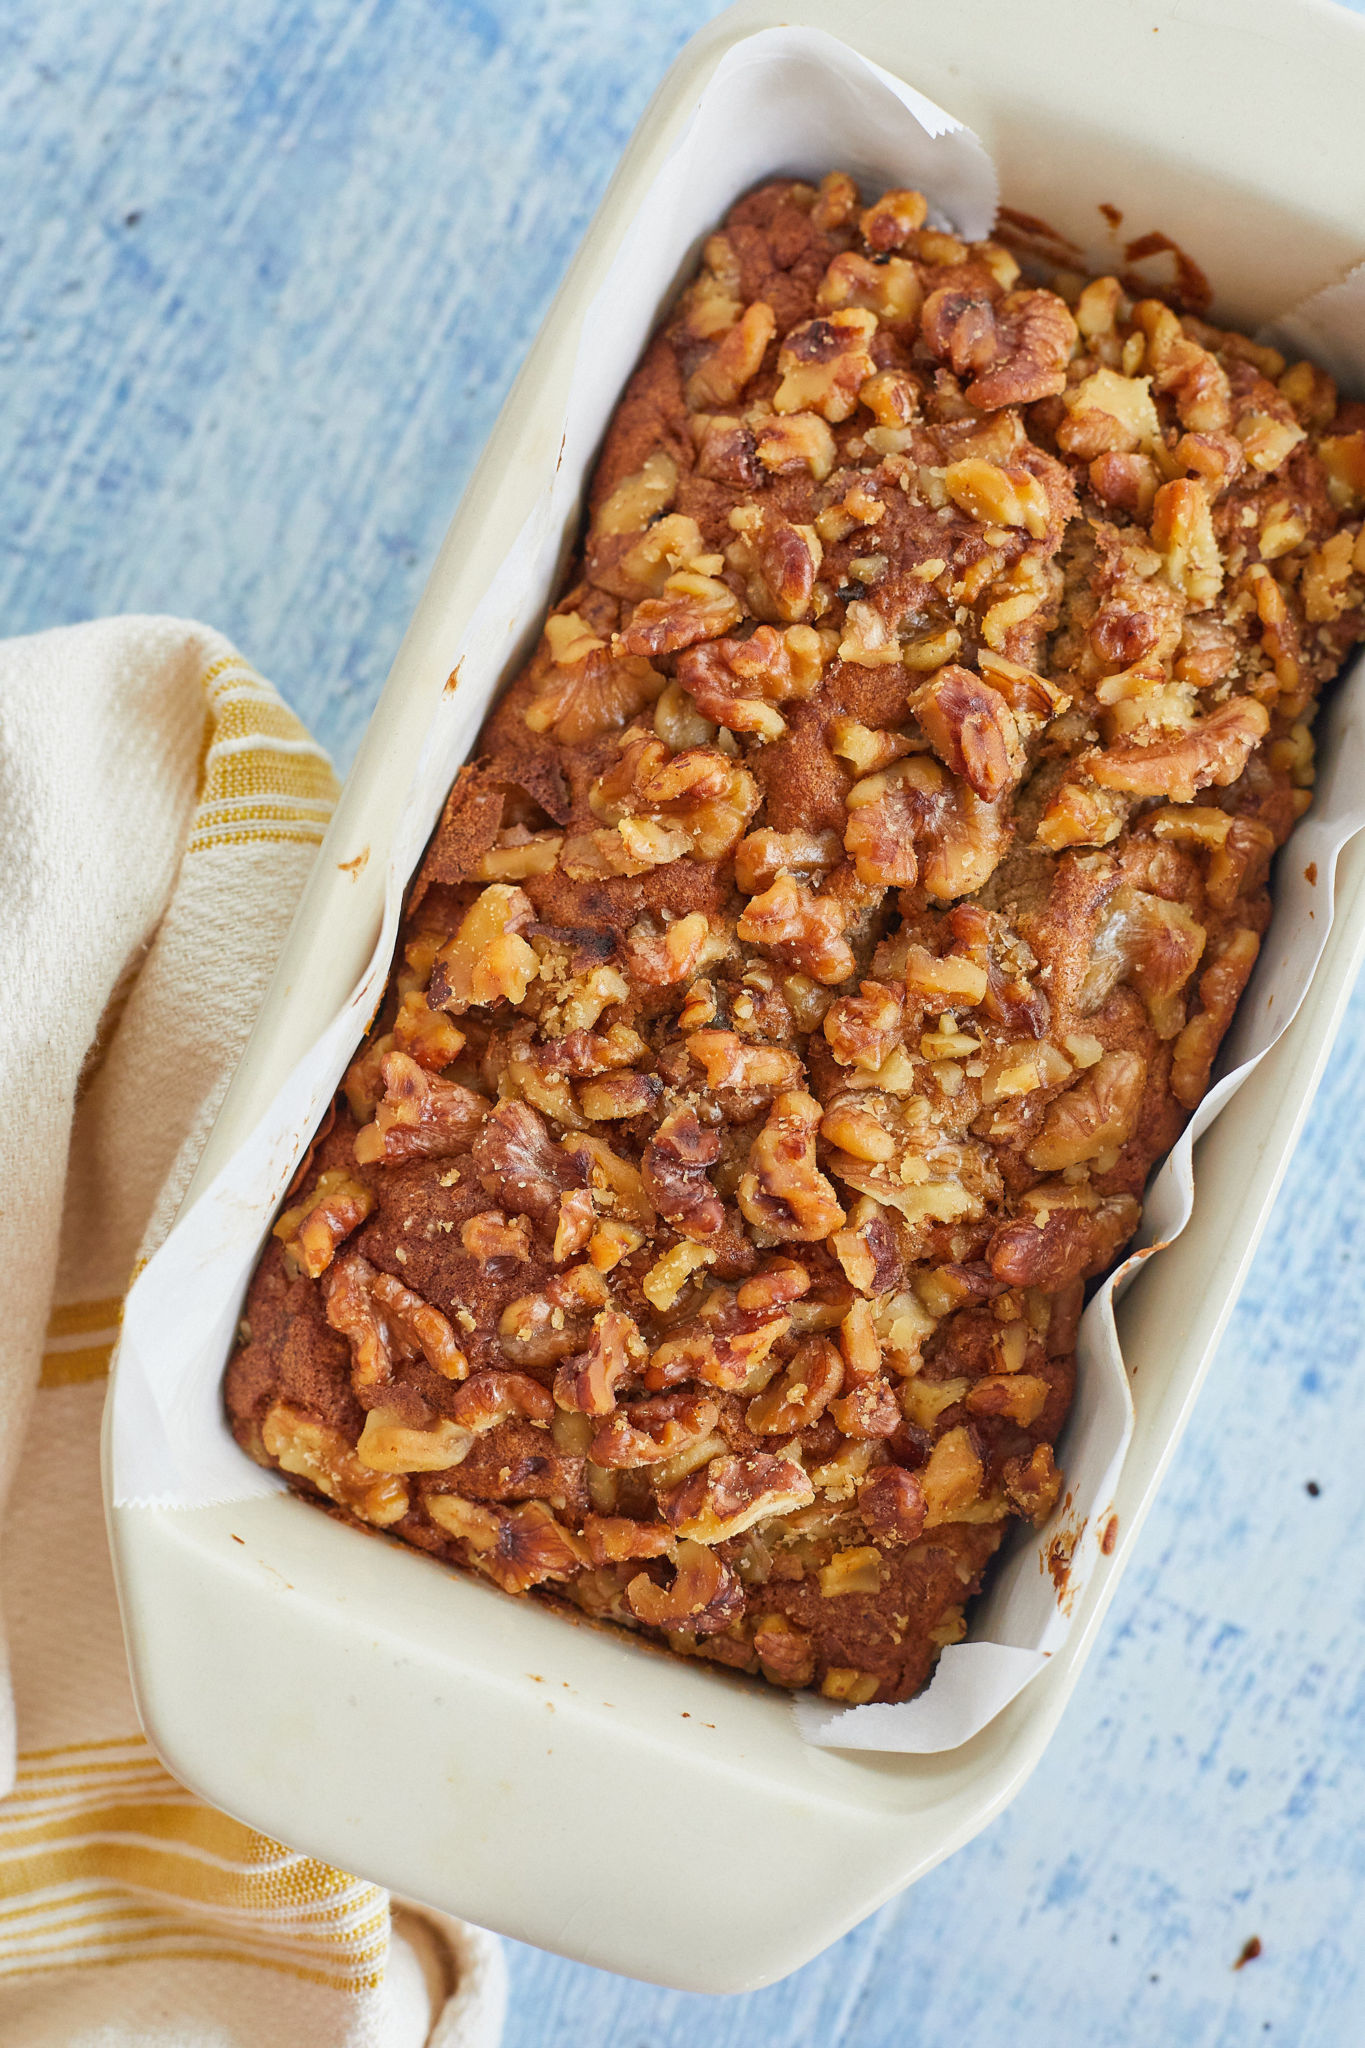 The top of Mia's Banana Nut Bread recipe covered in walnuts.